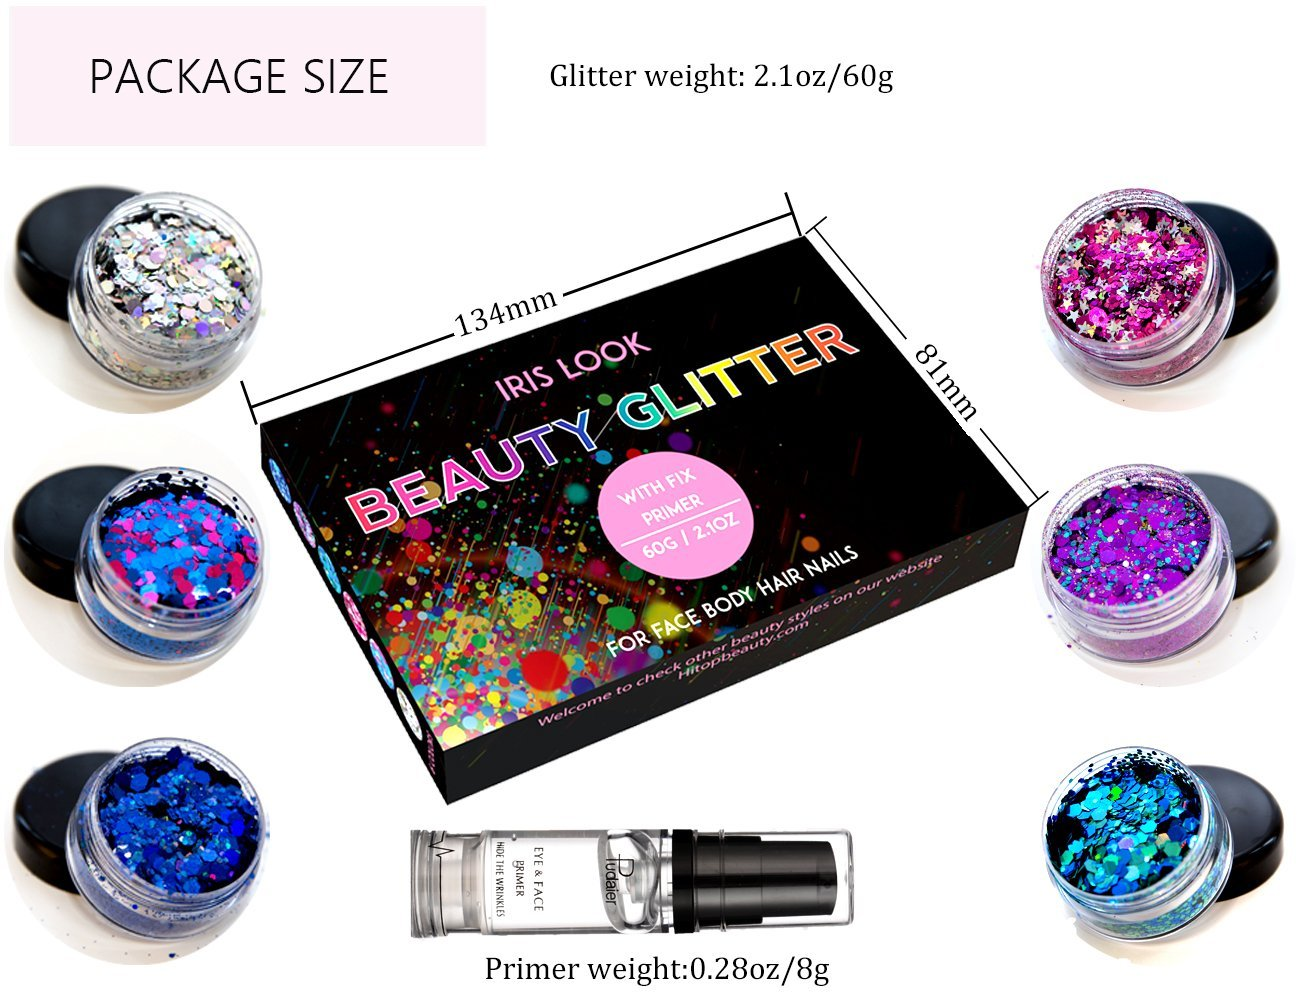 HITOP Colorful Cosmetic Chunky Glitter Festival Beauty Makeup Decoration for Body Face Nail Hair Eyes or Lips &DIY Crafts- Includes Long Lasting Free Fix Primer (6 Colors Set4) by HITOP (Image #4)